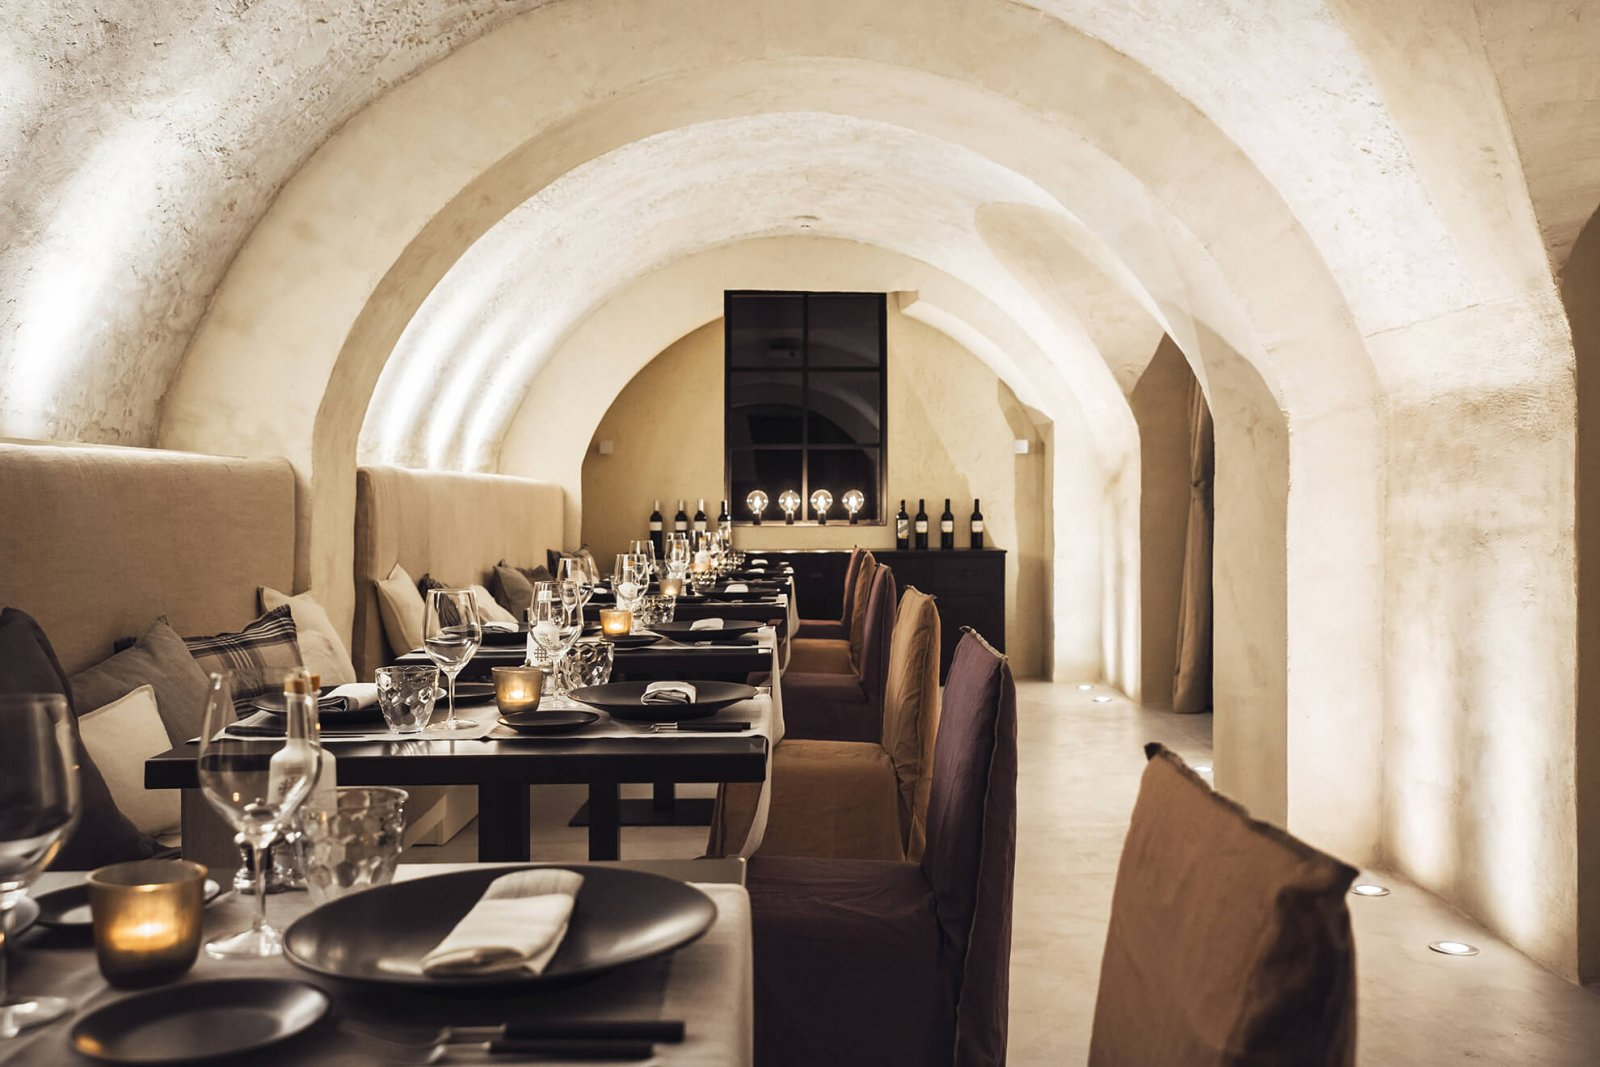 Detail view of the set tables in the restaurant and arched cream ceilings